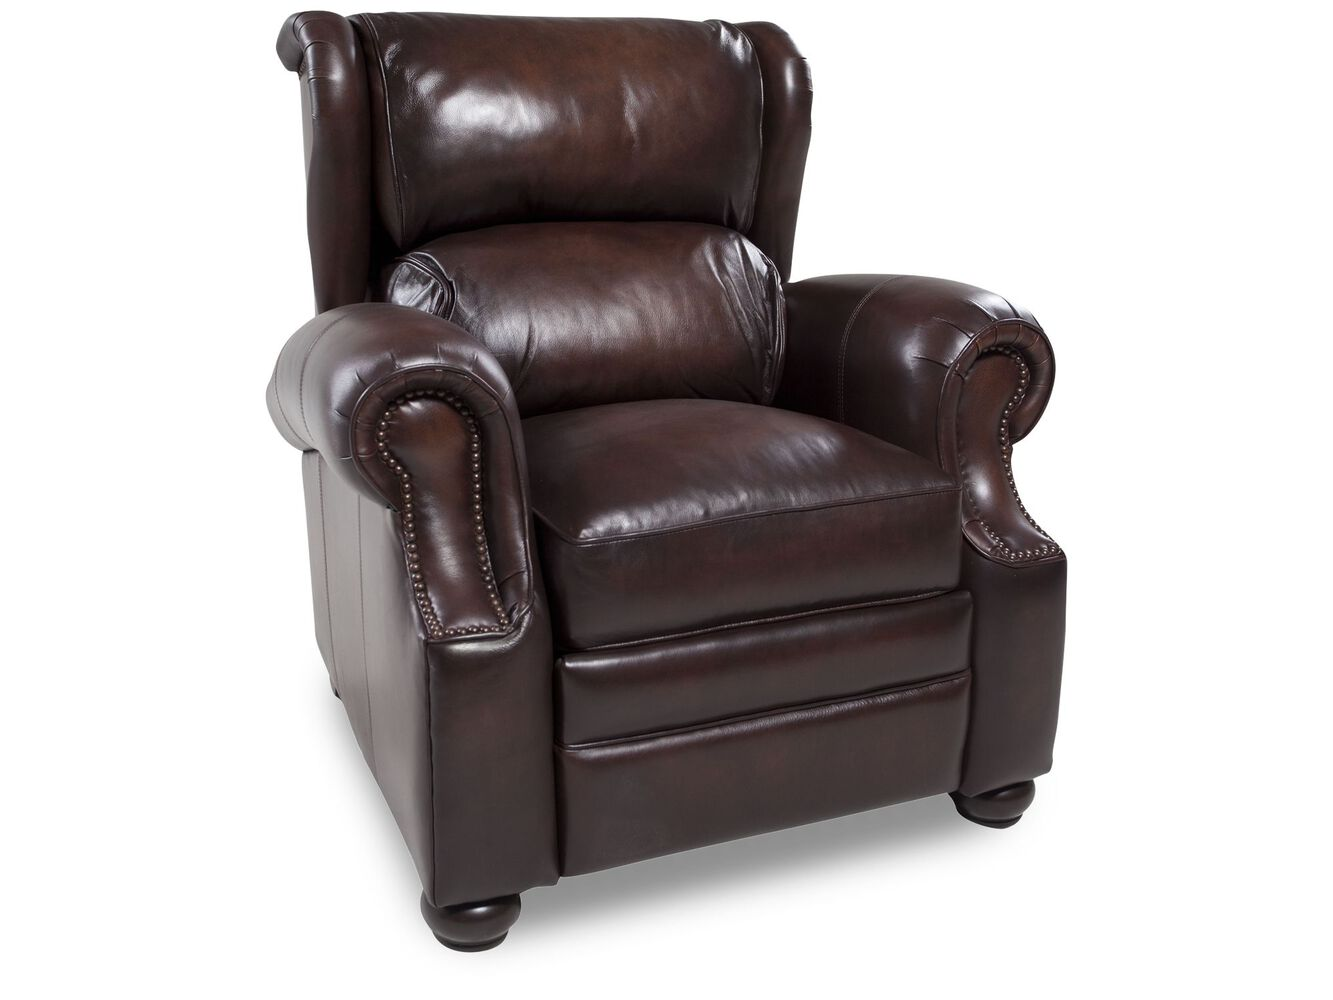 bernhardt warner leather recliner bernhardt warner leather recliner bedroomsplendid leather desk chair furniture office sealy